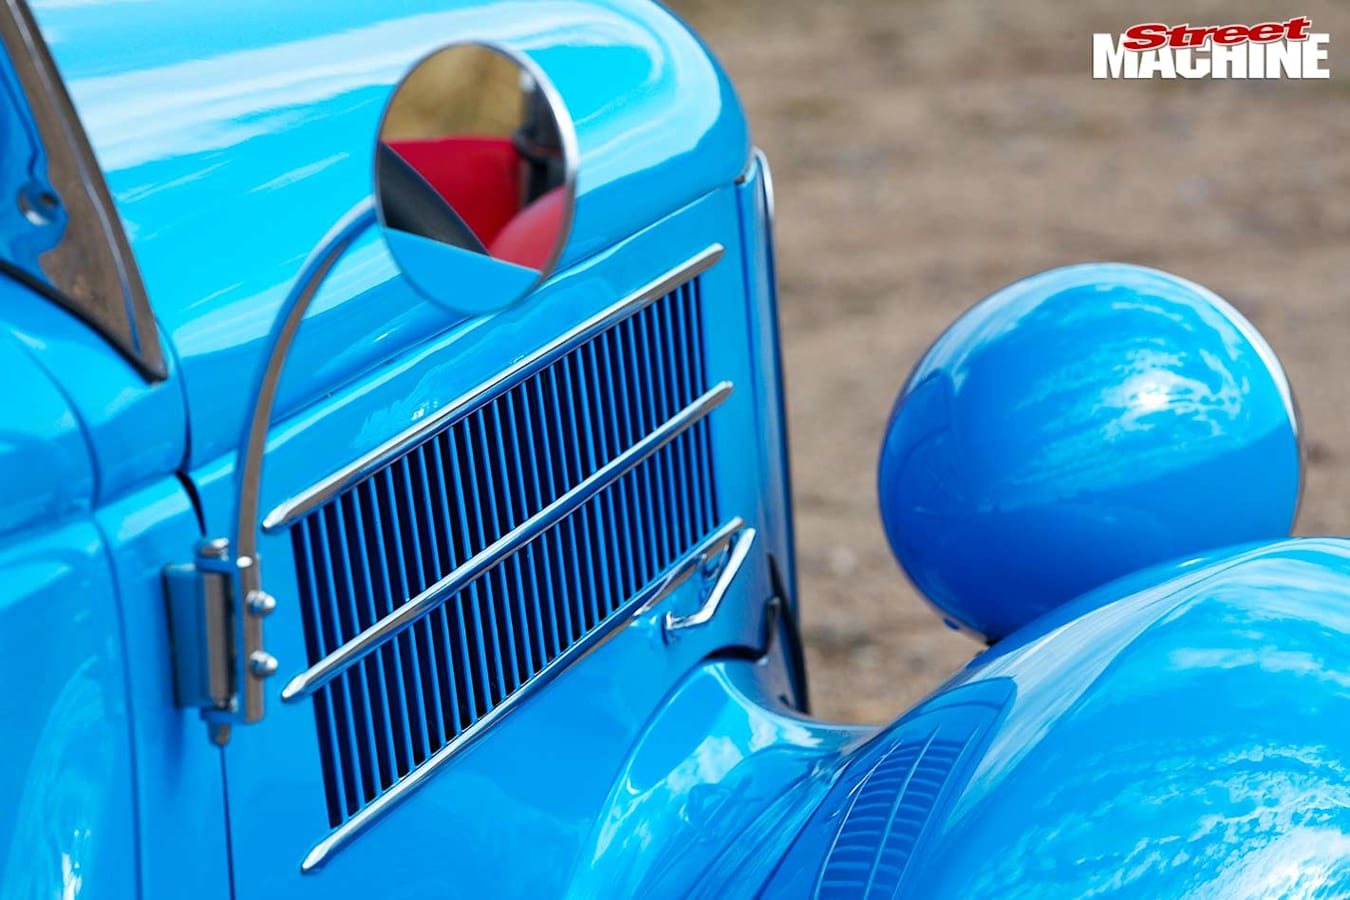 Ford Roadster mirror